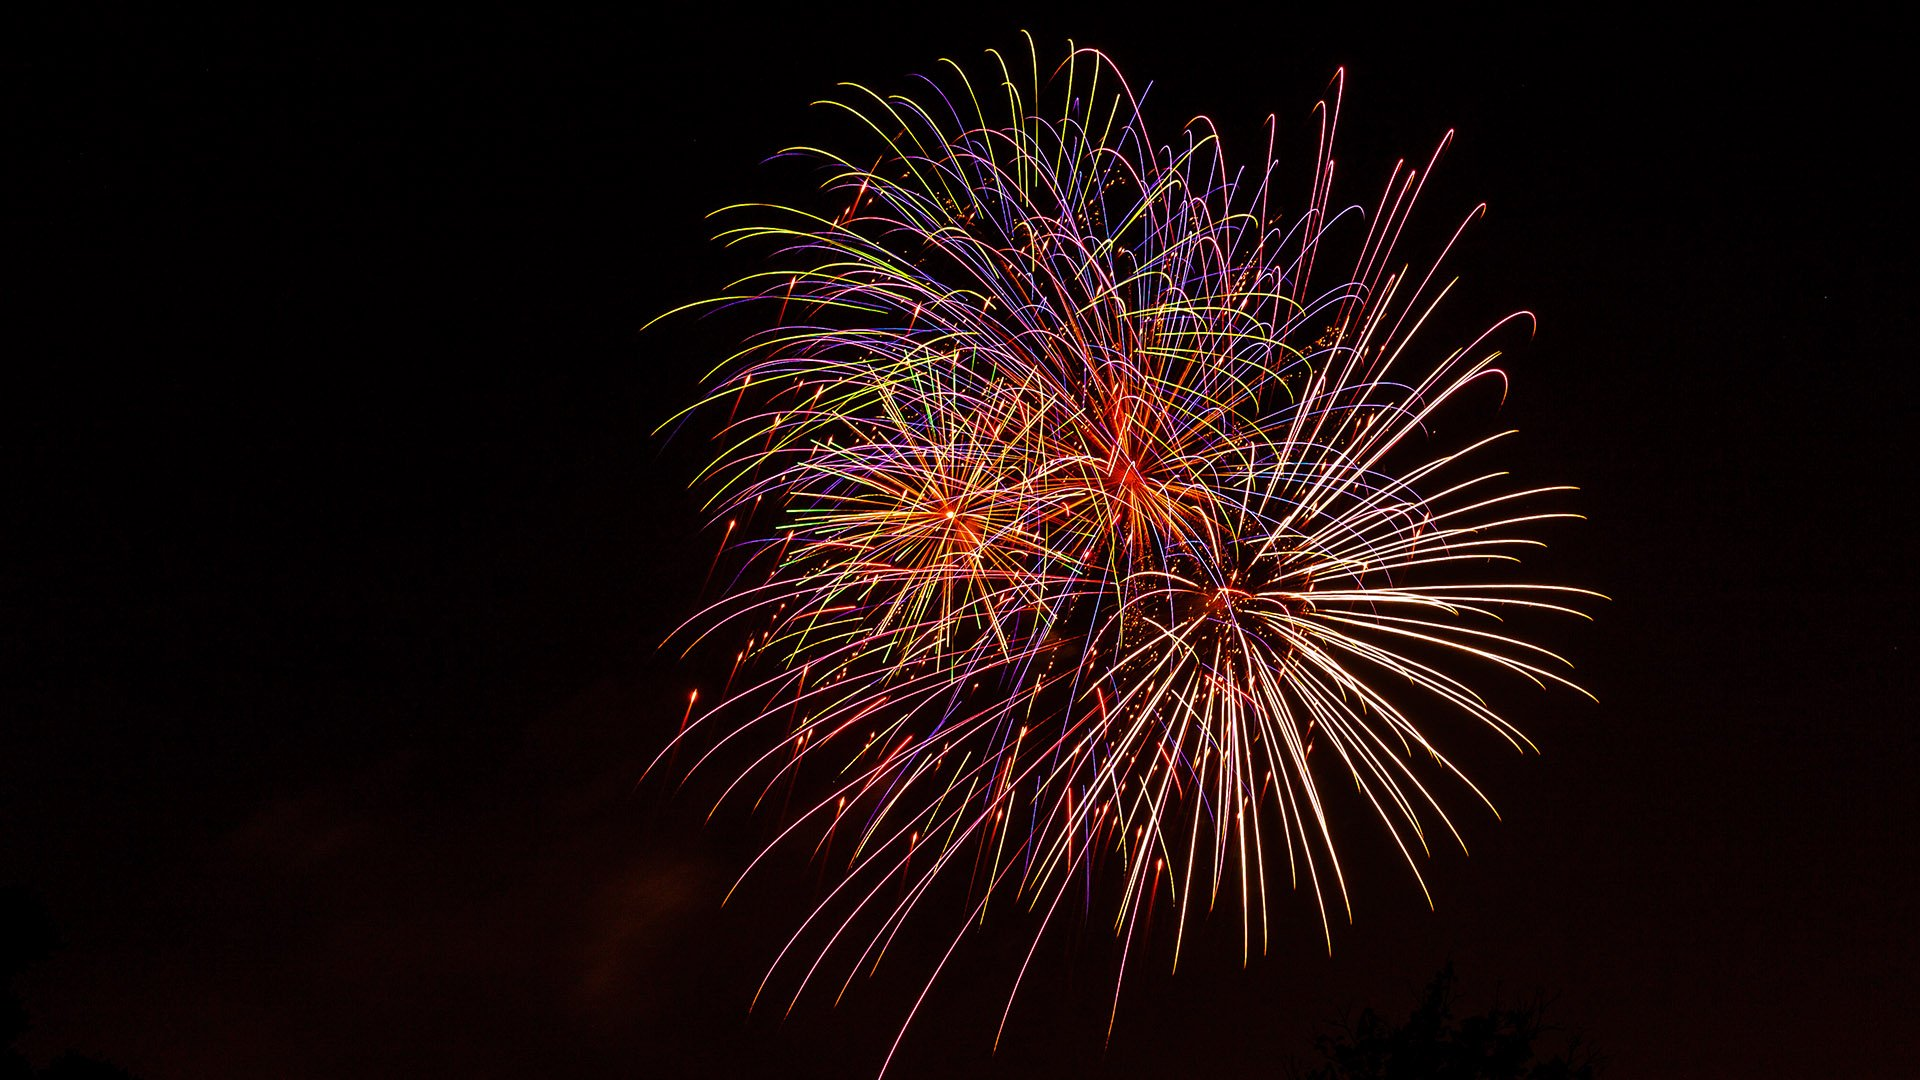 Quick Tip: Use a Black Card While Photographing Fireworks   Photofocus